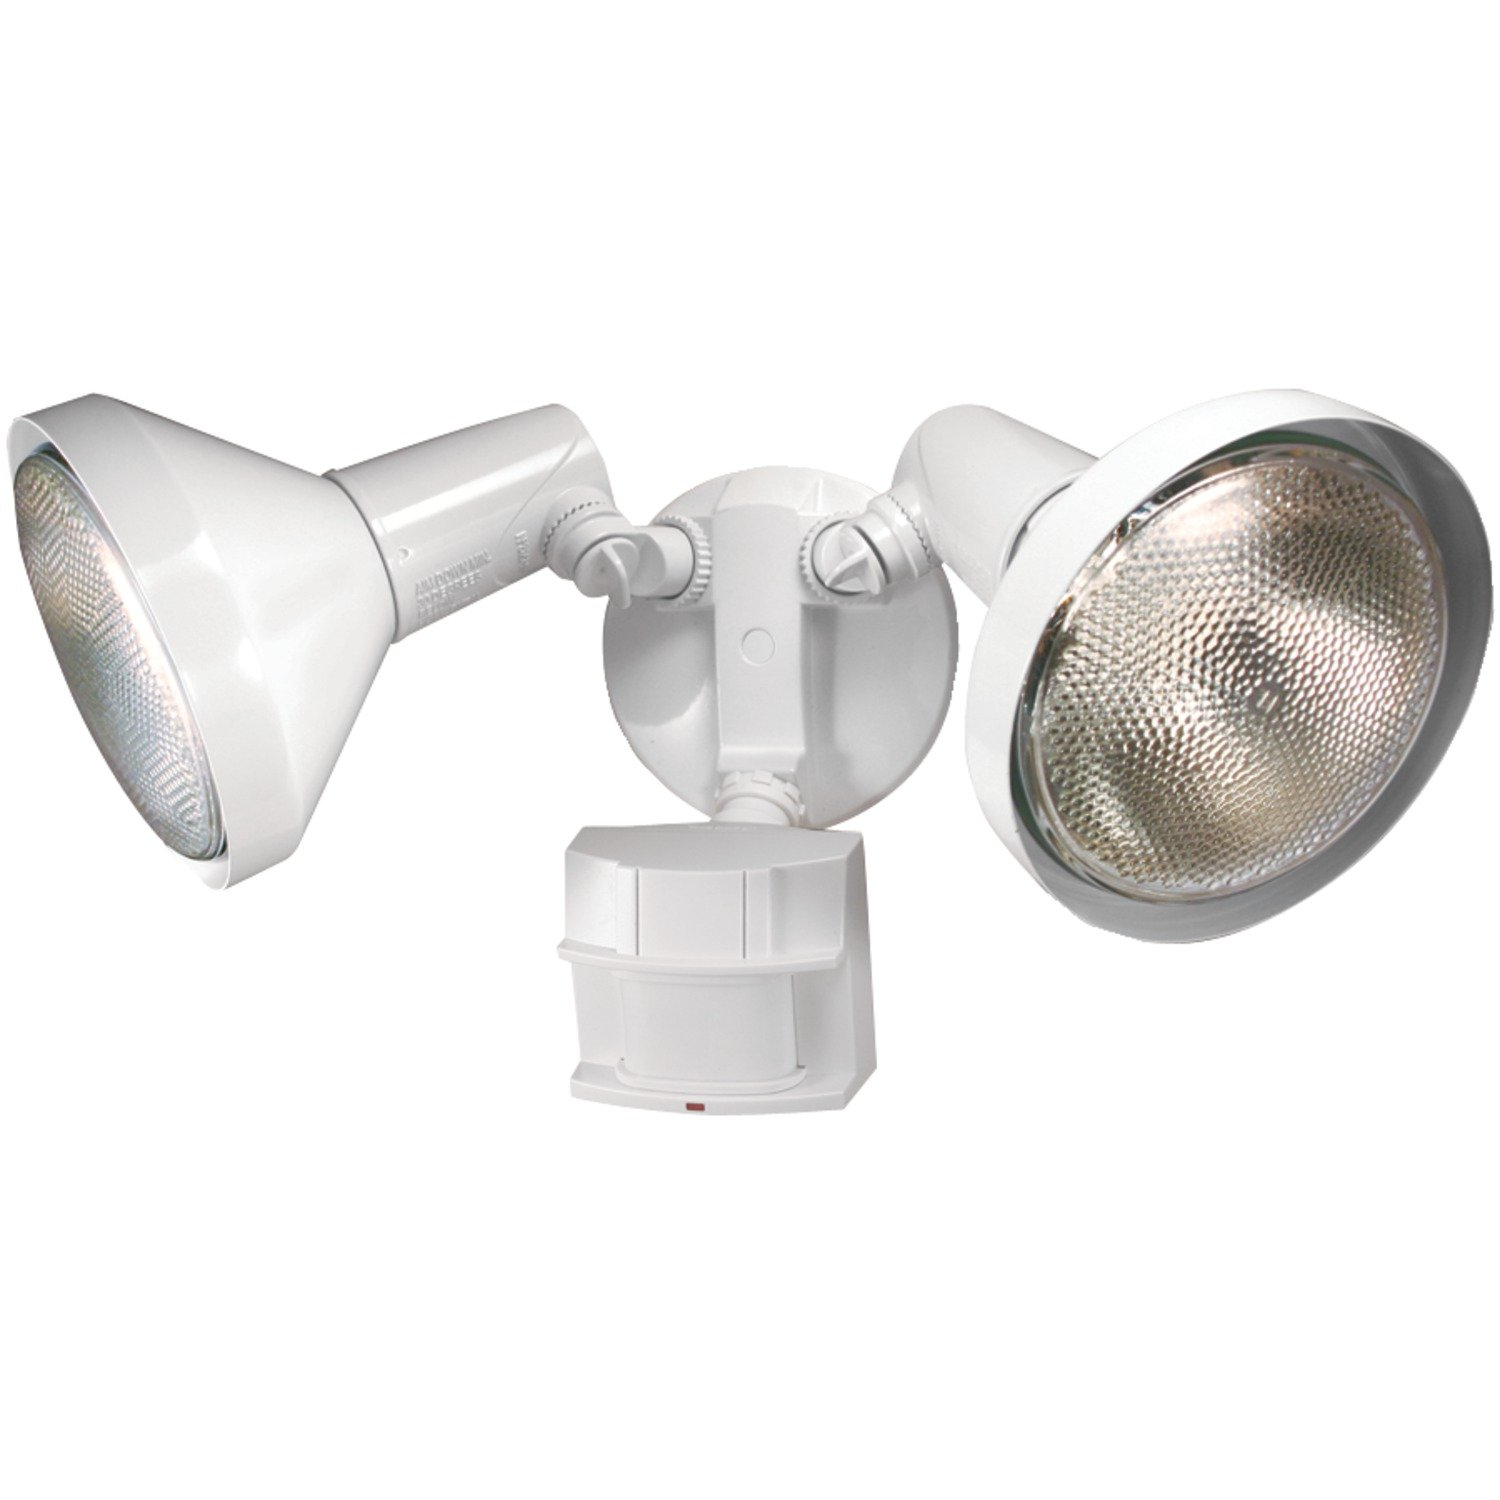 Fresh Light Motion Sensor Outdoor